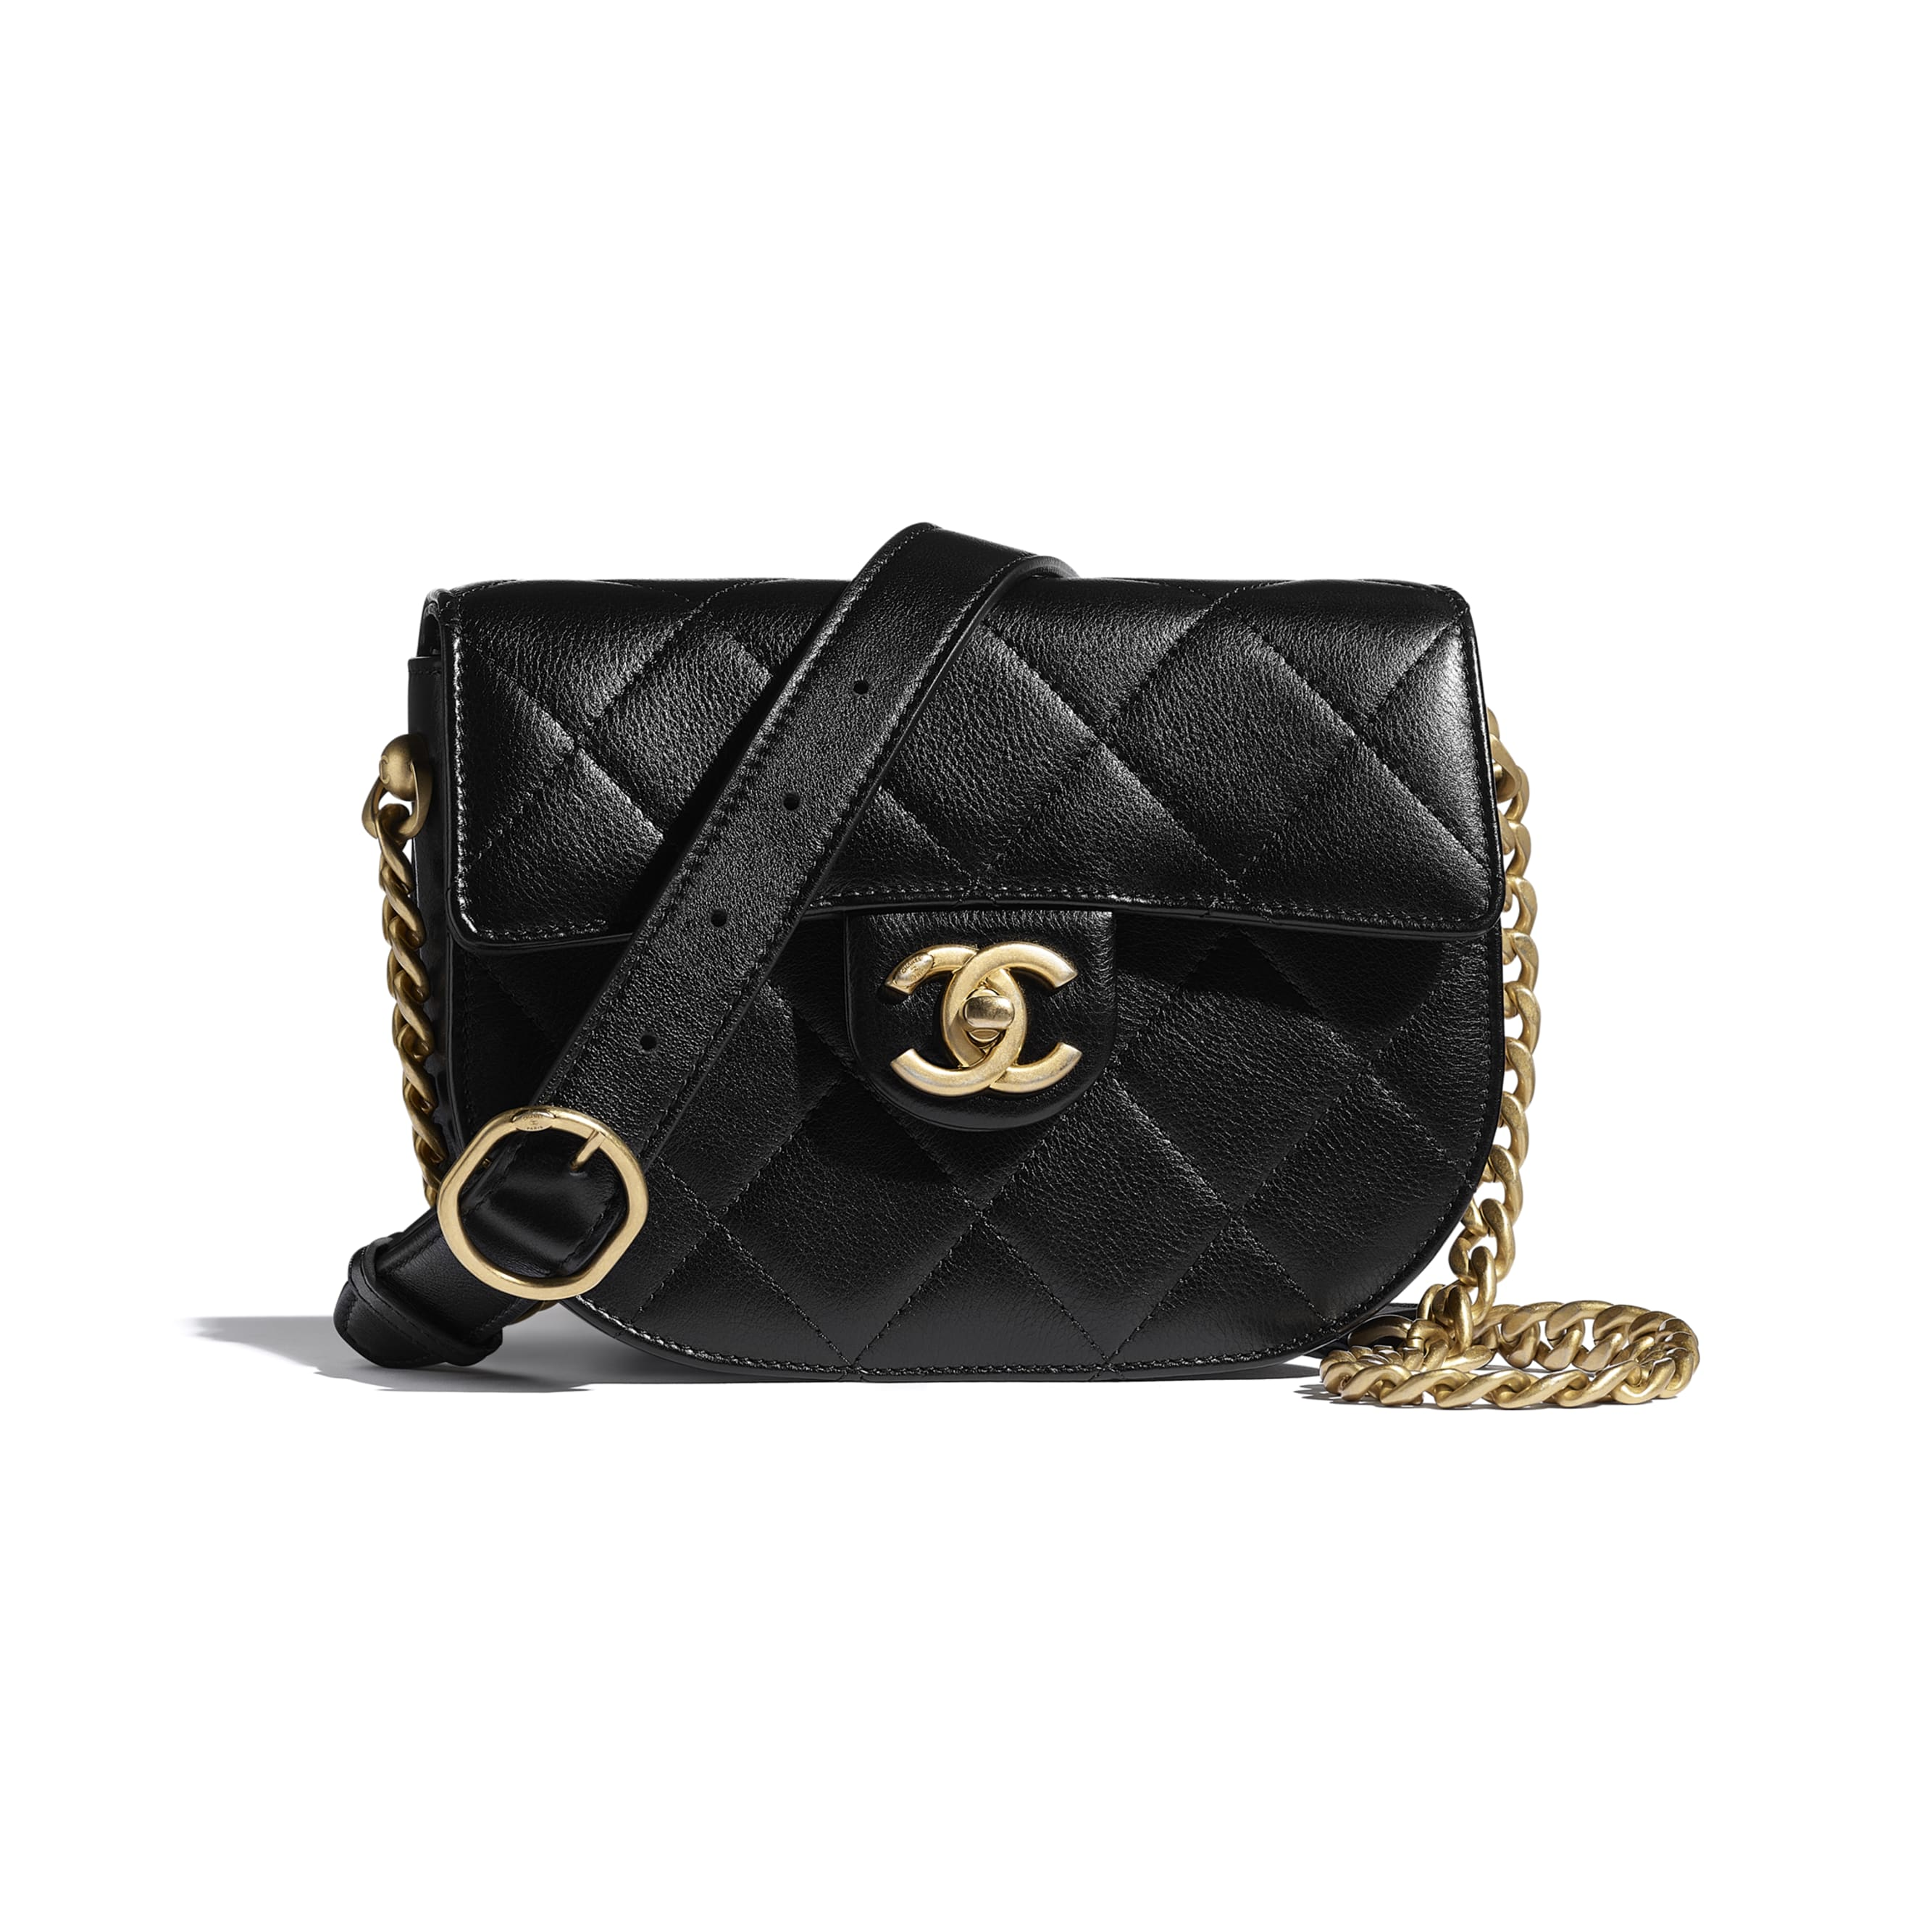 Mini Messenger Bag - Black - Calfskin & Gold-Tone Metal - CHANEL - Default view - see standard sized version